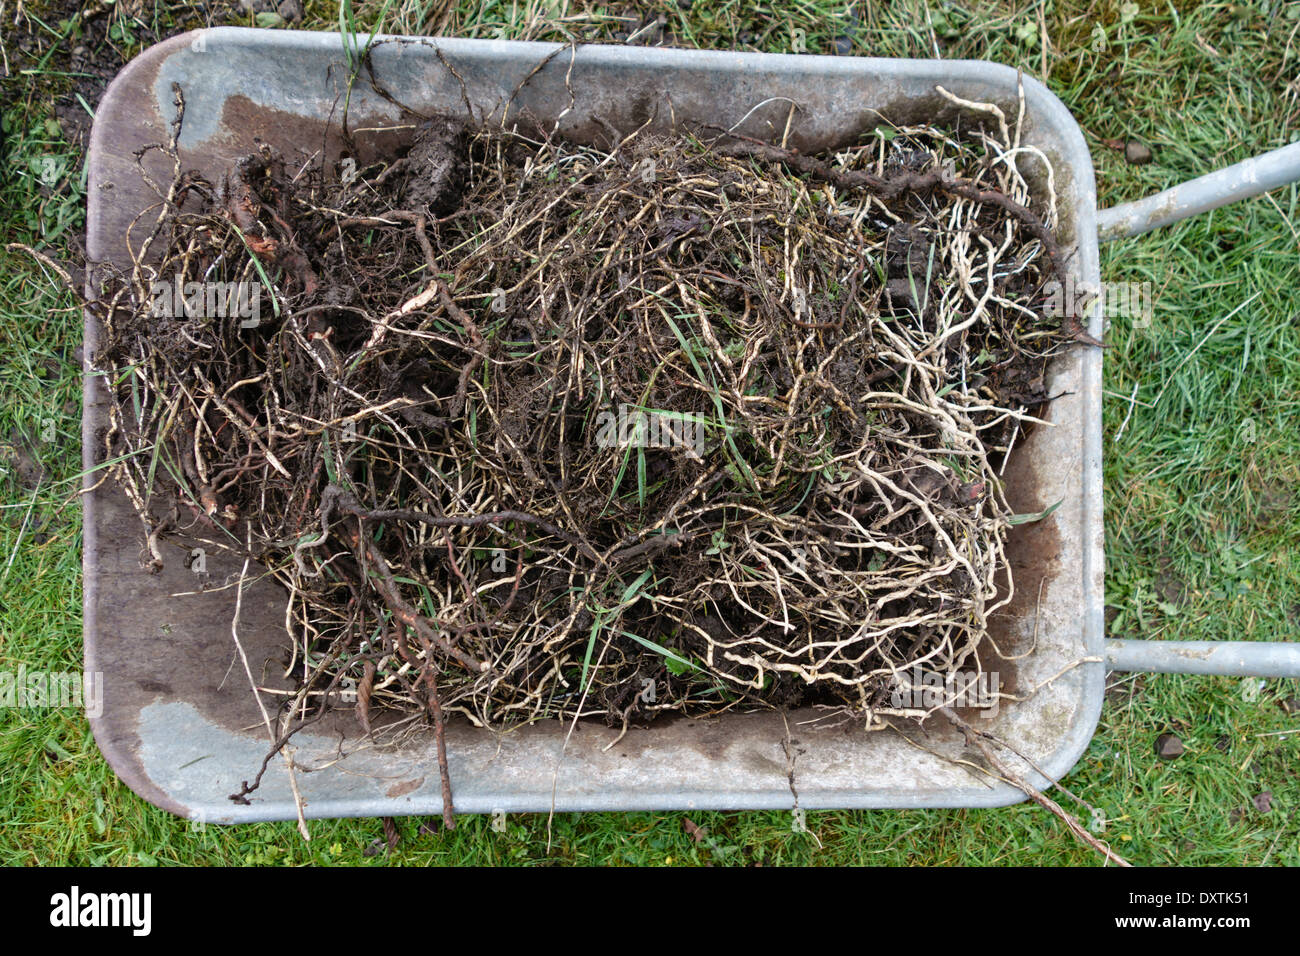 A wheelbarrow full of field bindweed (Convolvulus arvensis) and twitch or couch grass (Elymus repens) dug out of a vegetable bed - Stock Image